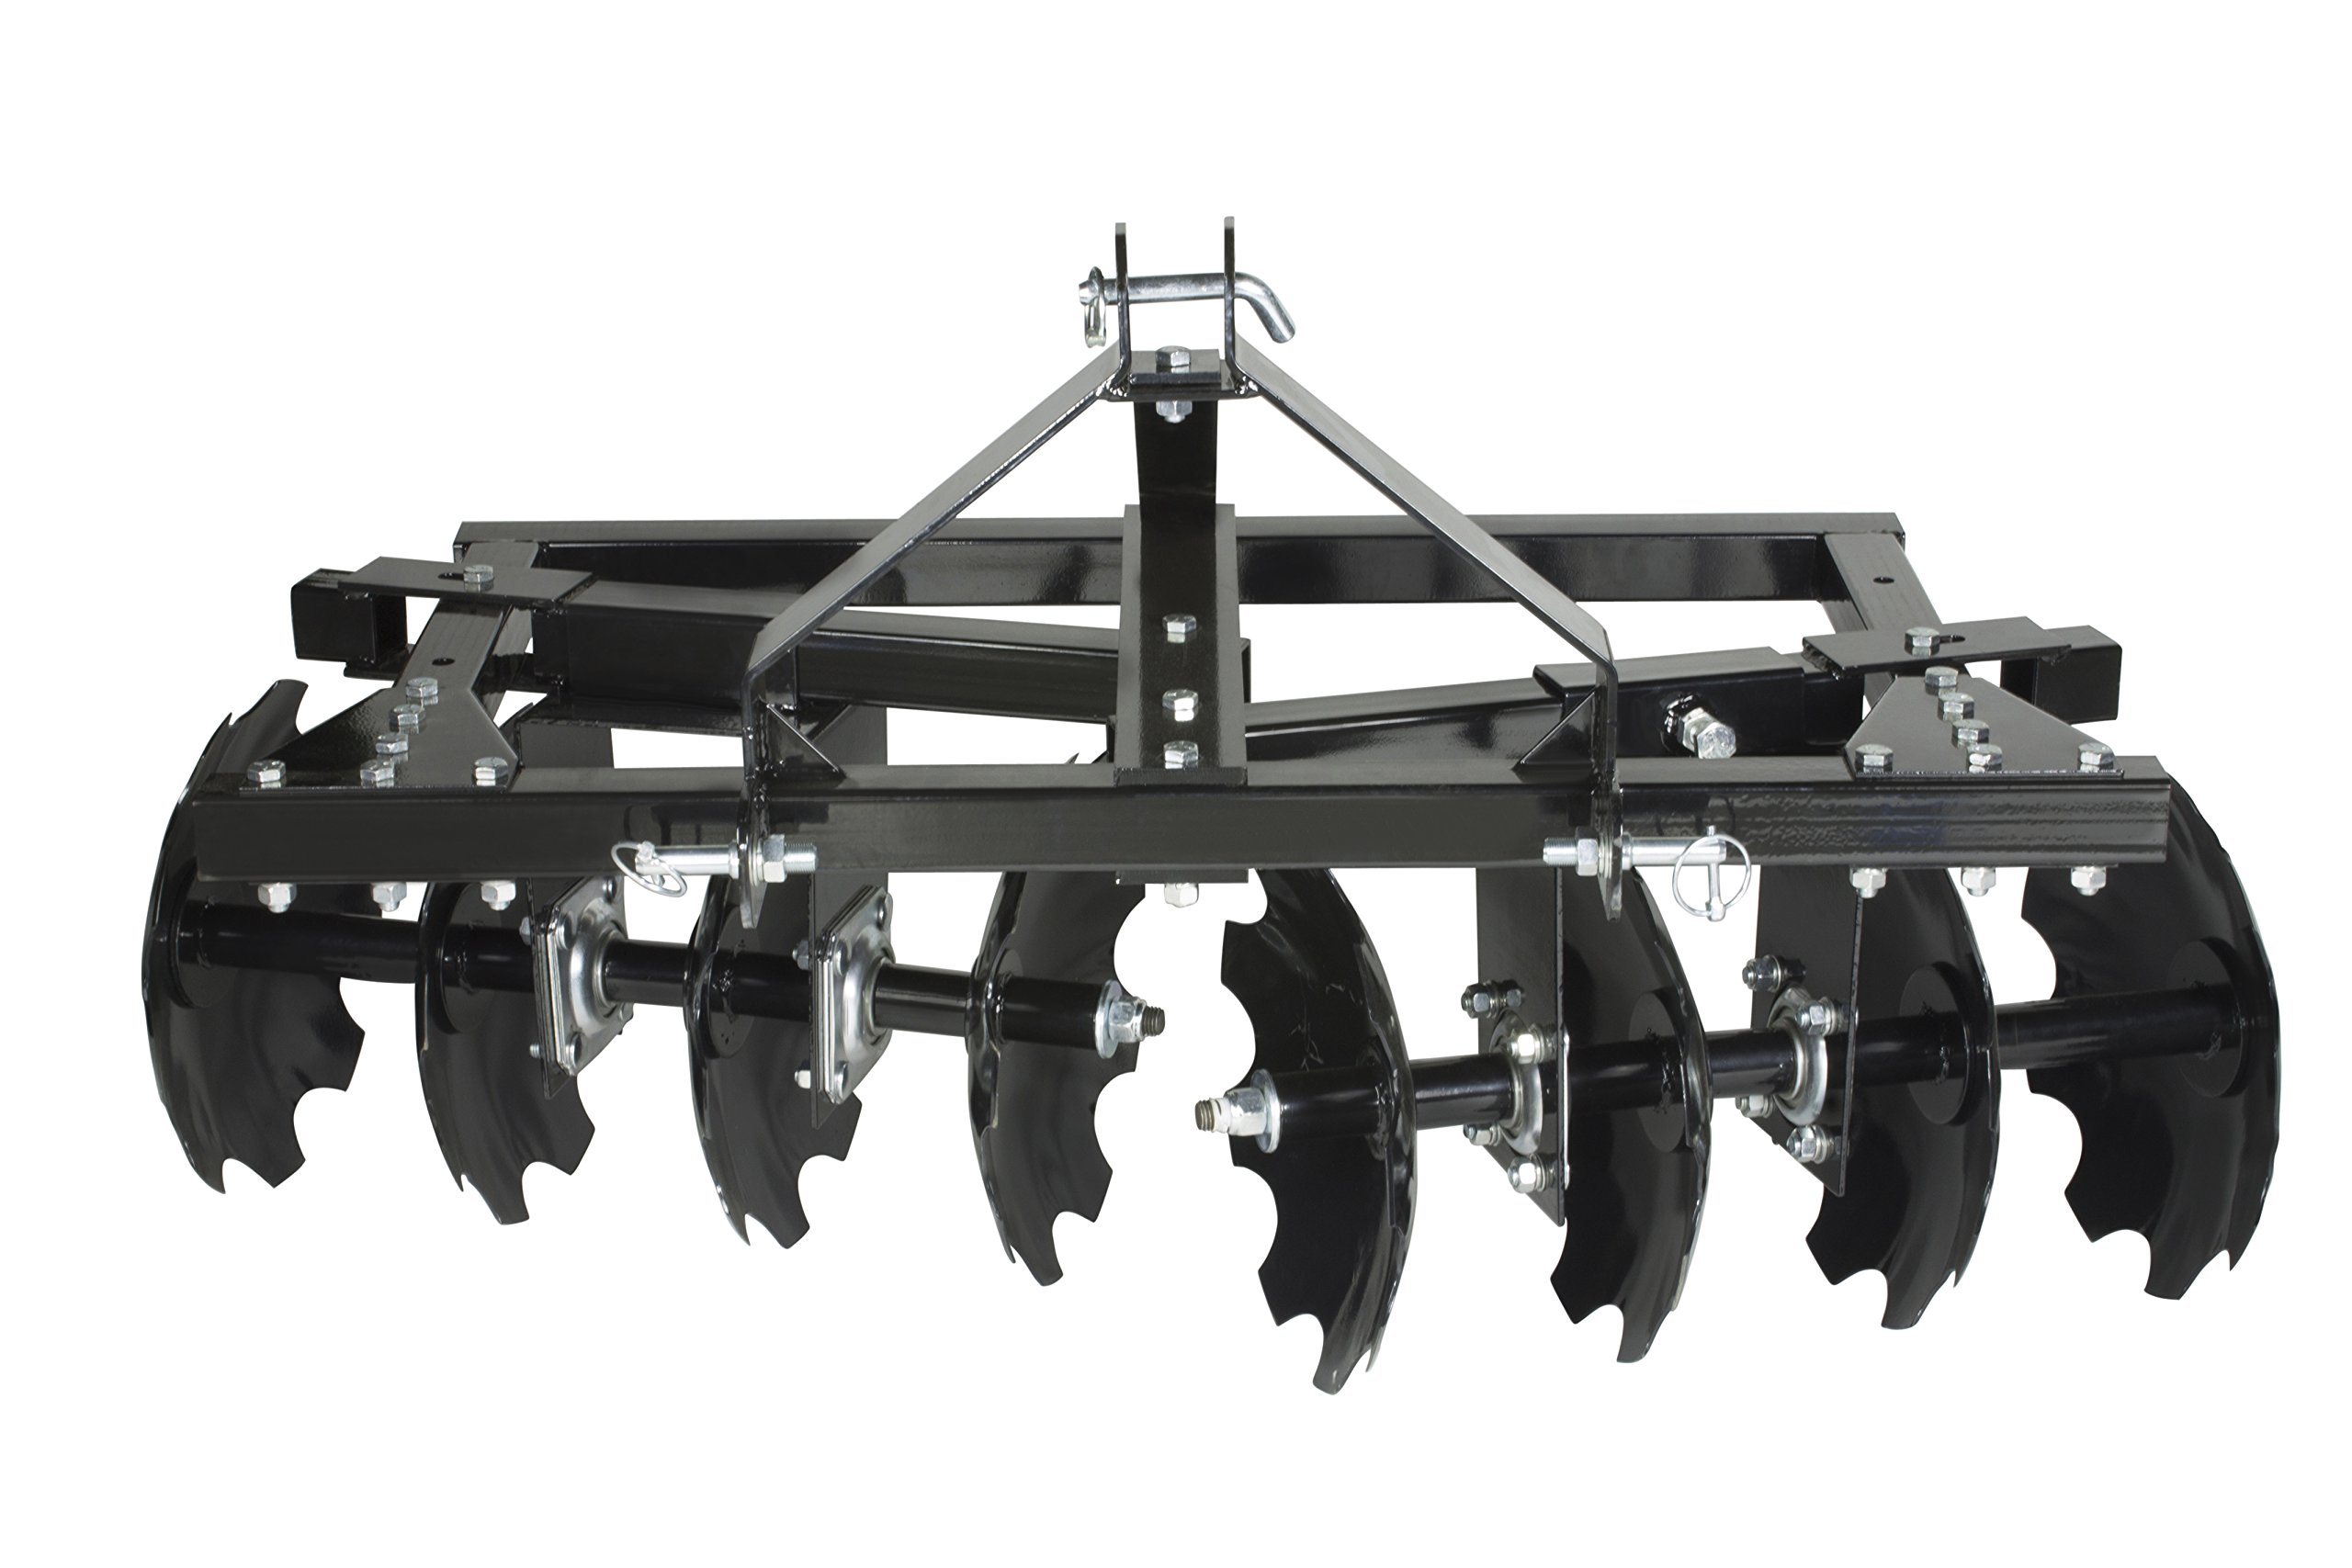 IMPACT Implements CAT-0 Disc Plow/Harrow, 48'' - 52'' Width by Unknown